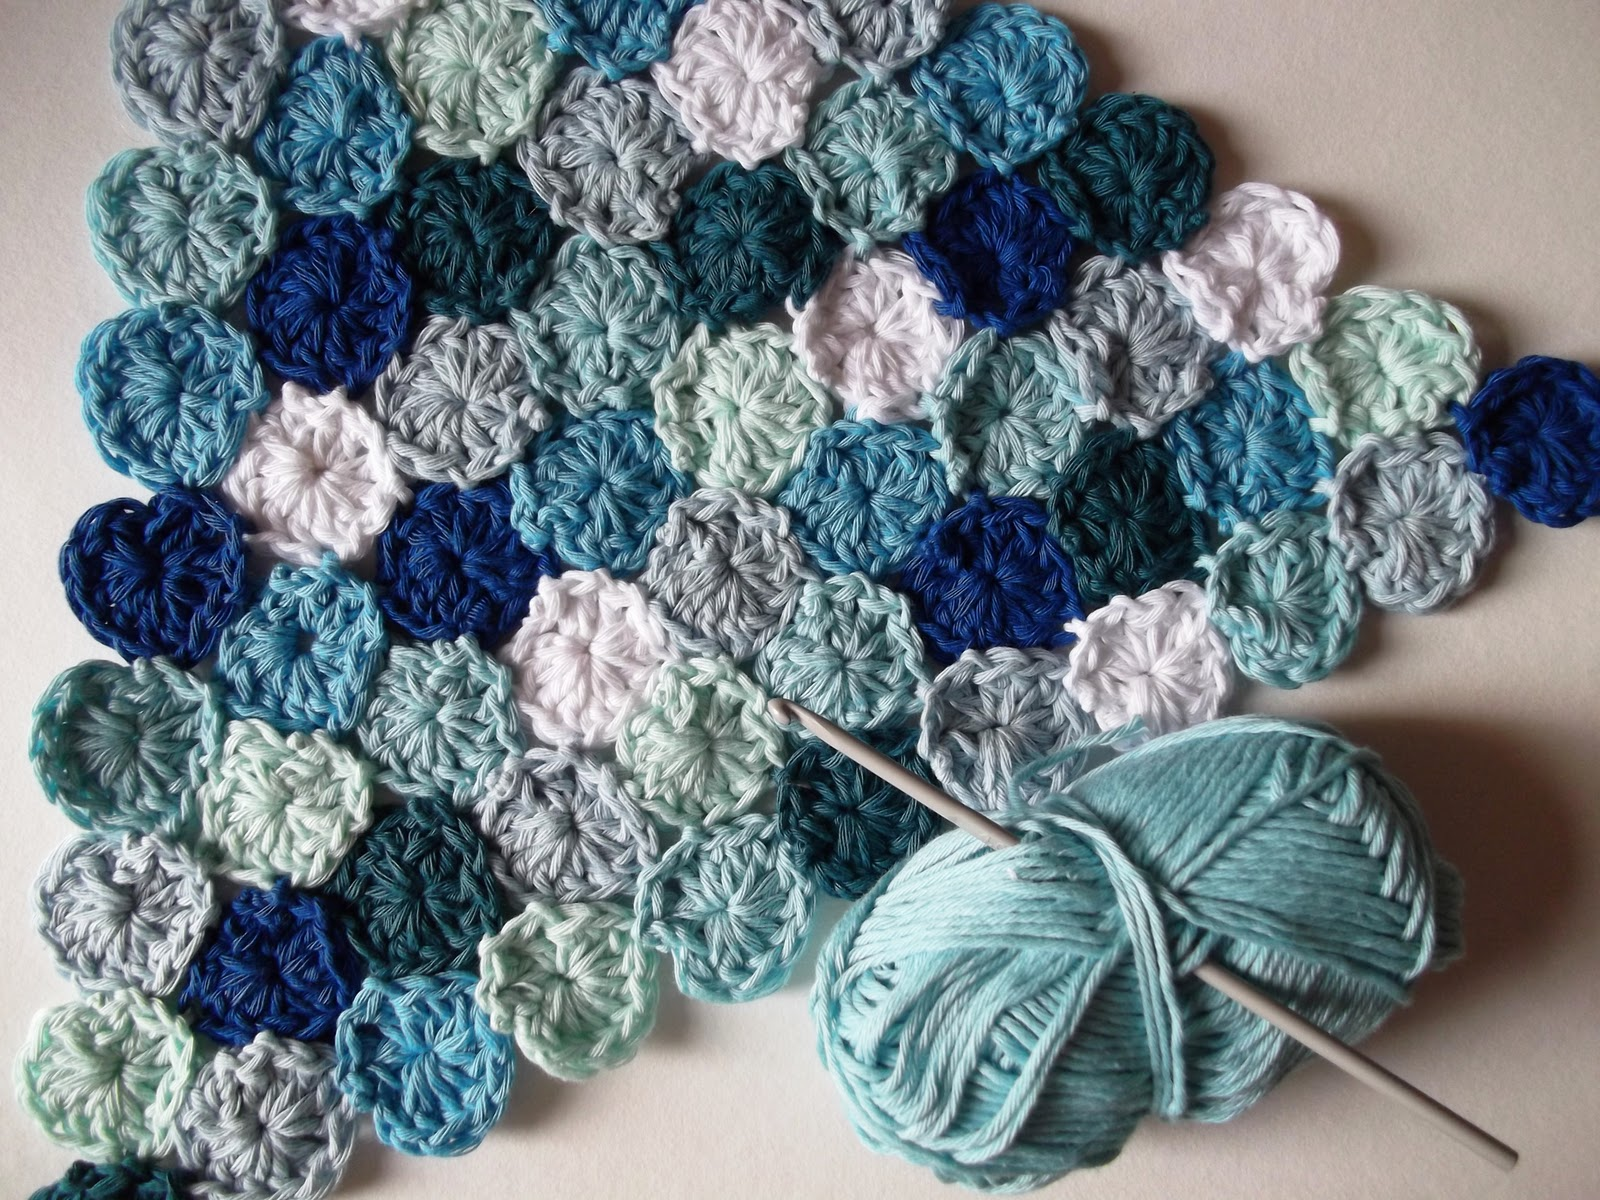 How To Crochet Tutorial Pictures : JuliaCrossland: How to Crochet Sea Pennies